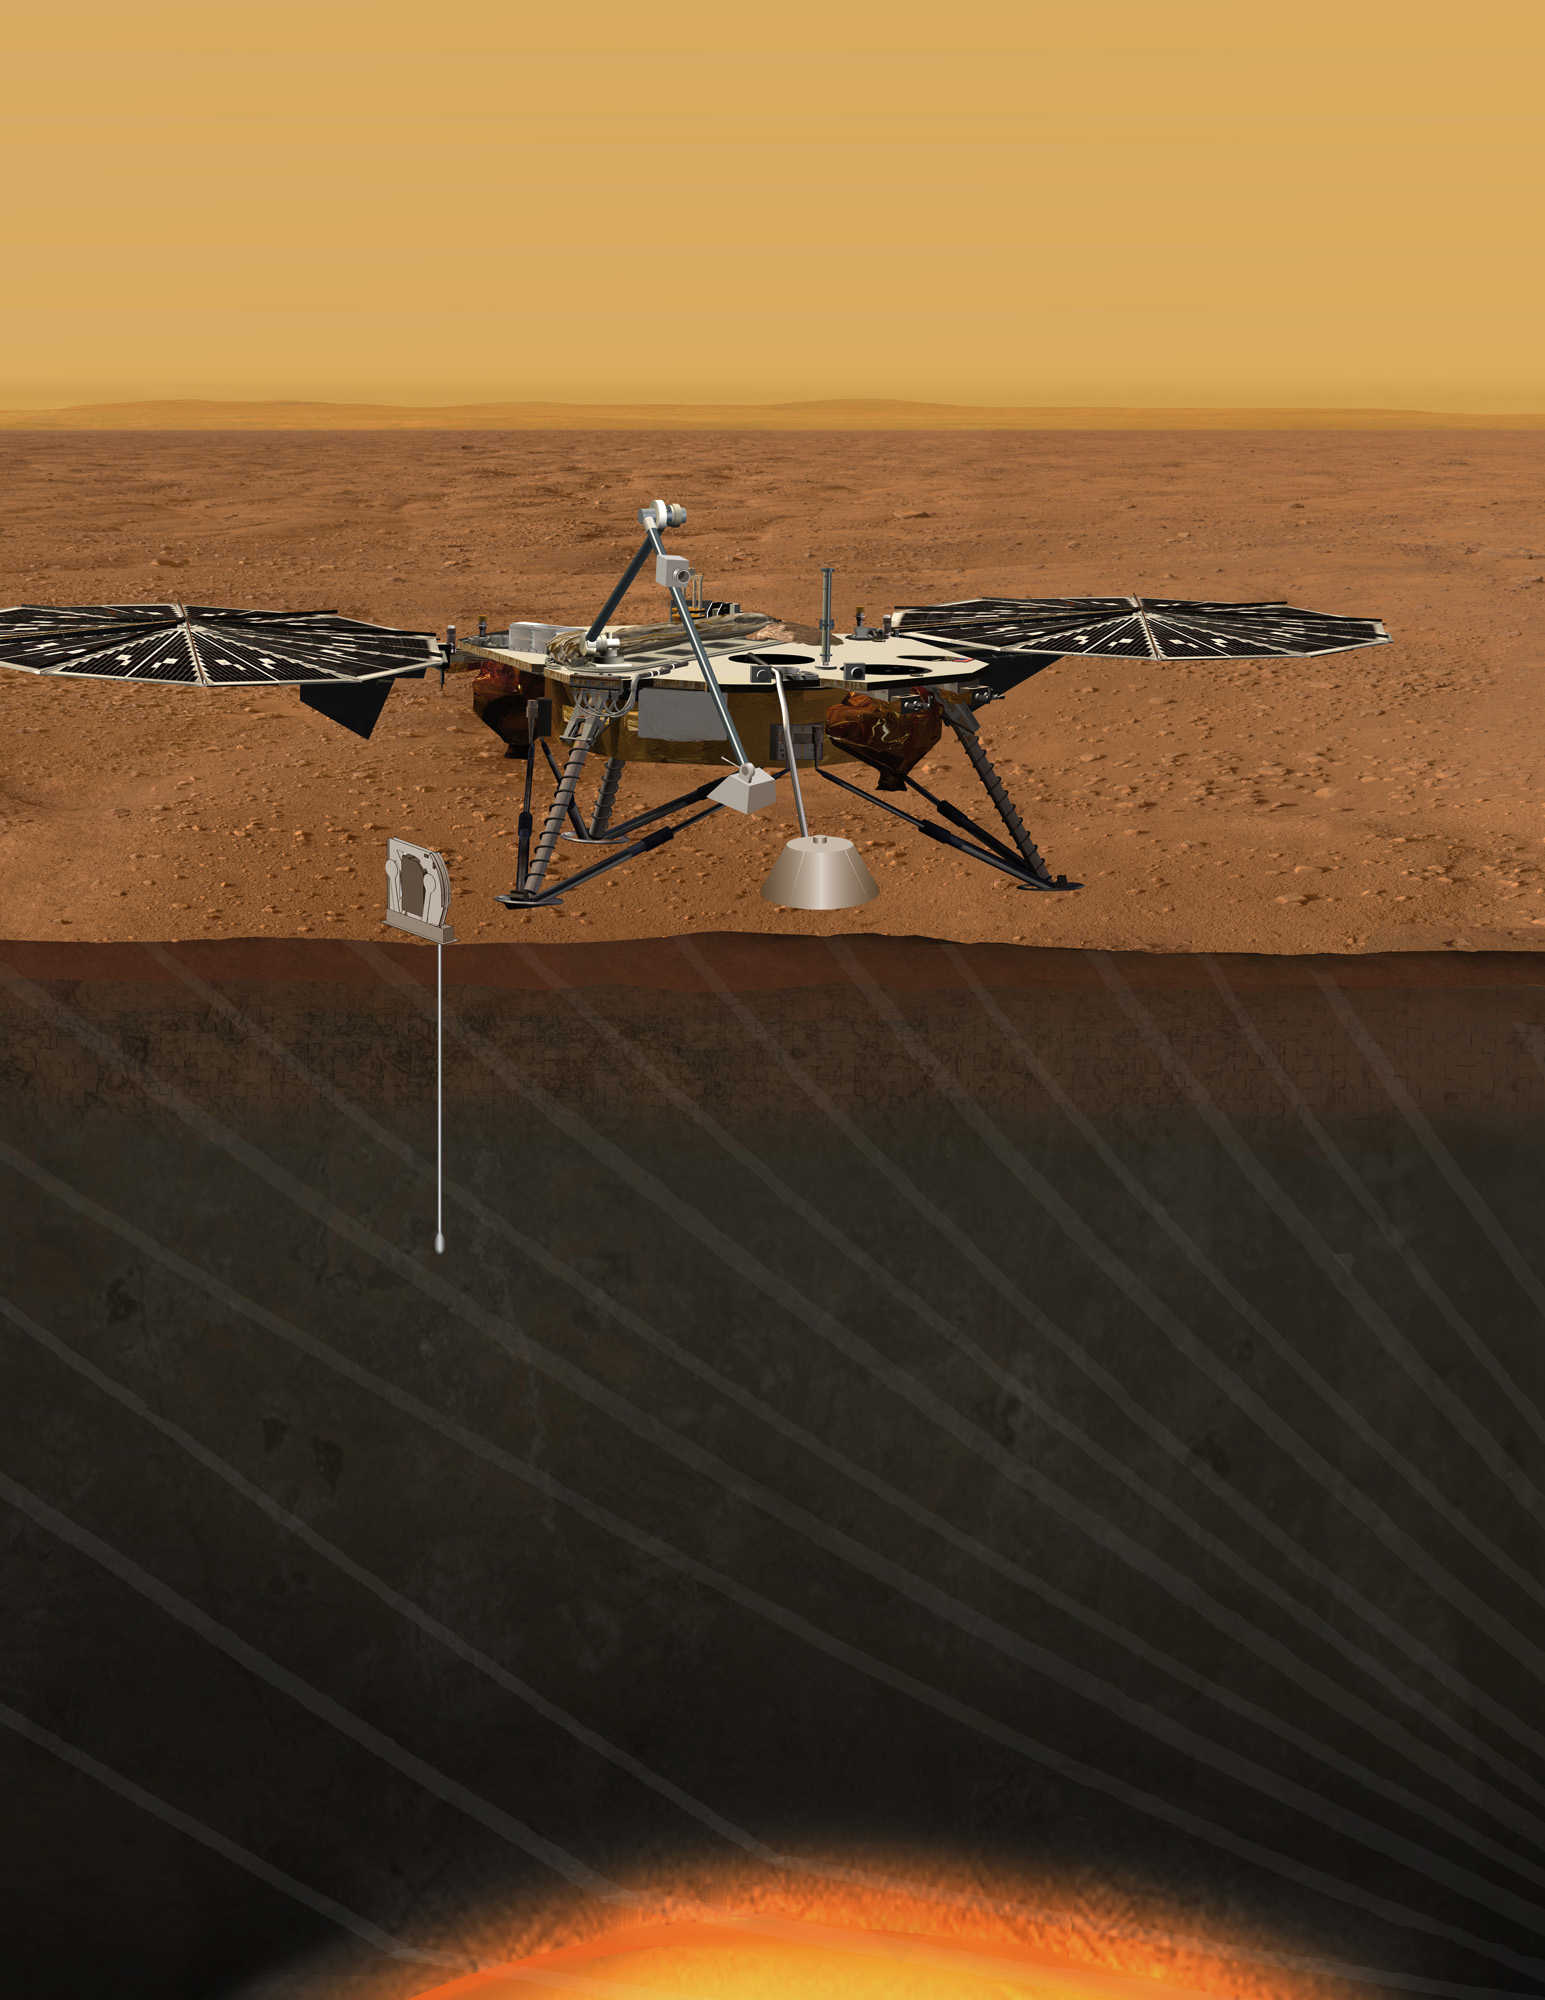 An artist's concept portrays the proposed Geophysical Monitoring Station mission for studying the deep interior of Mars.